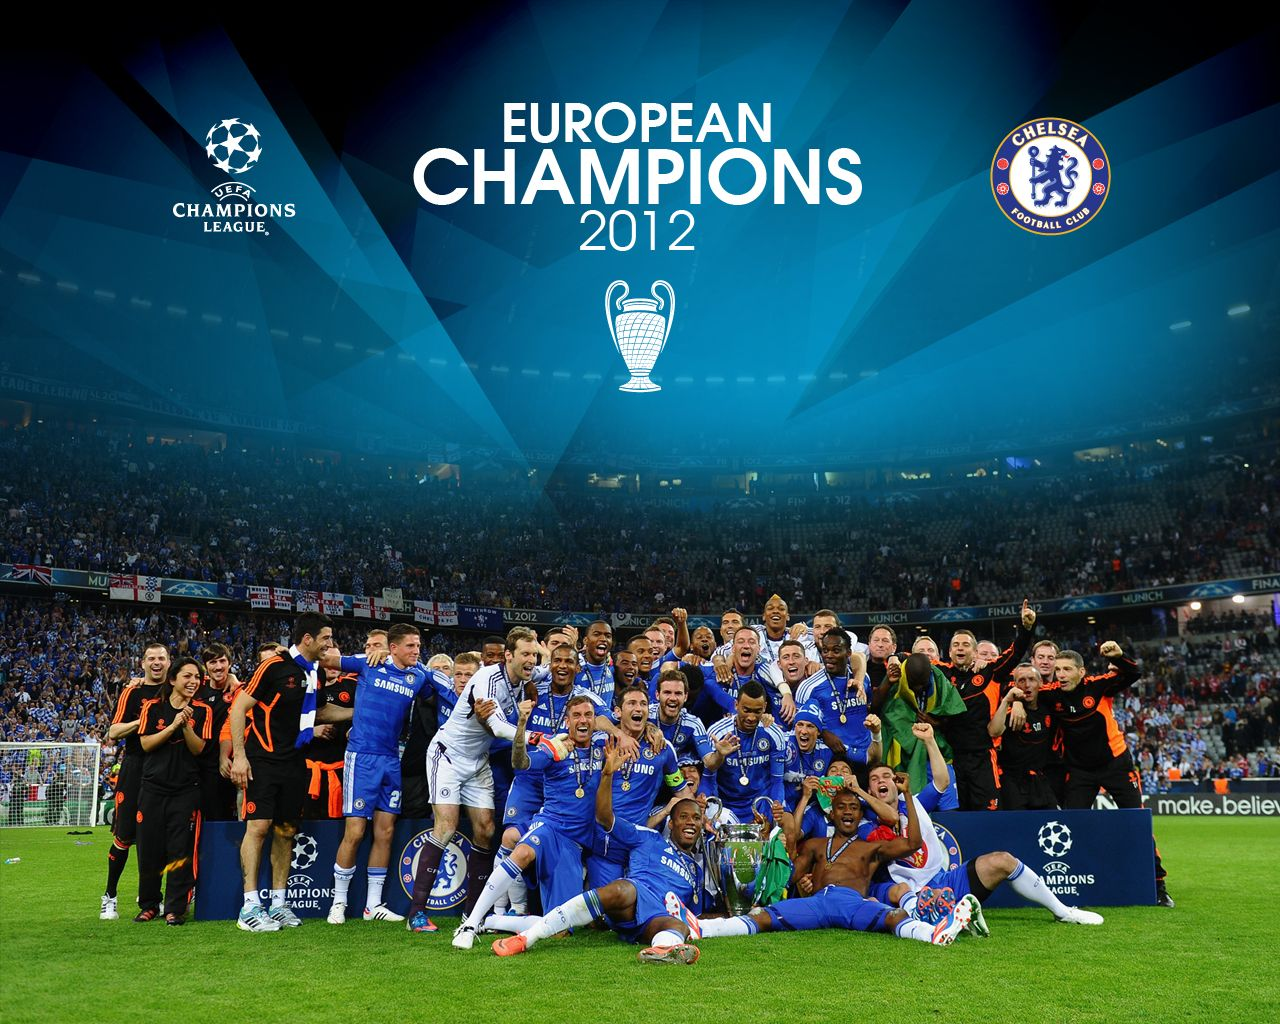 We are th champions chelsea pinterest chelsea fc and we are th champions chelsea wallpapersblue flagchelsea fcroyal voltagebd Gallery